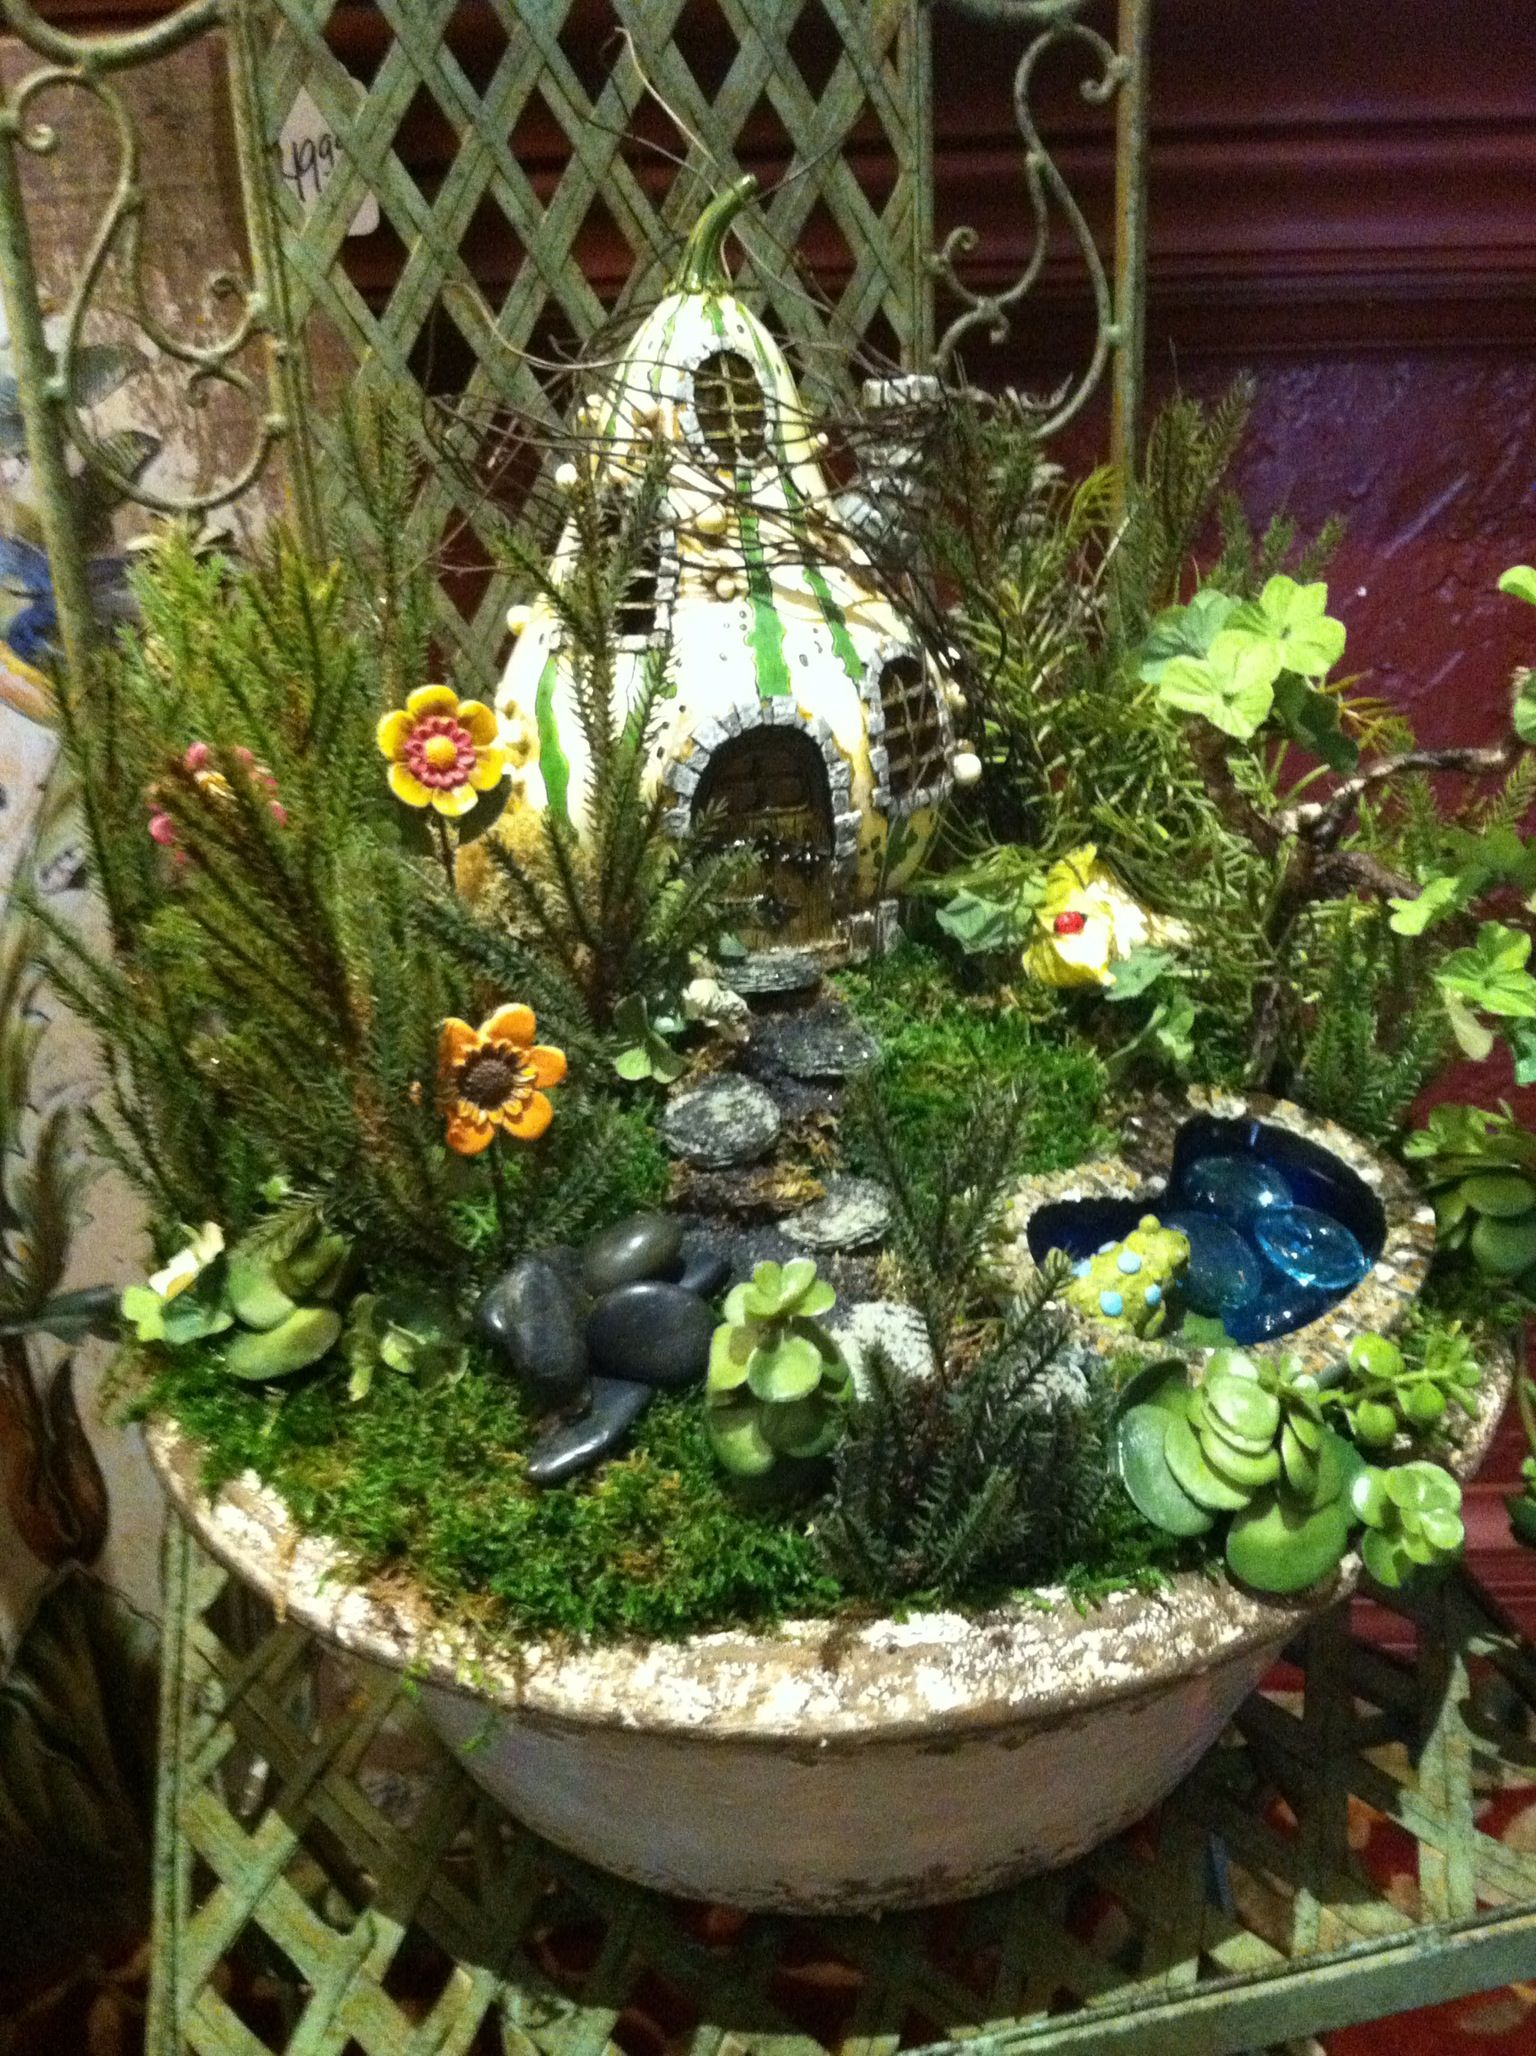 PreMade Fairy Garden at All Occasion & Home Decor' The